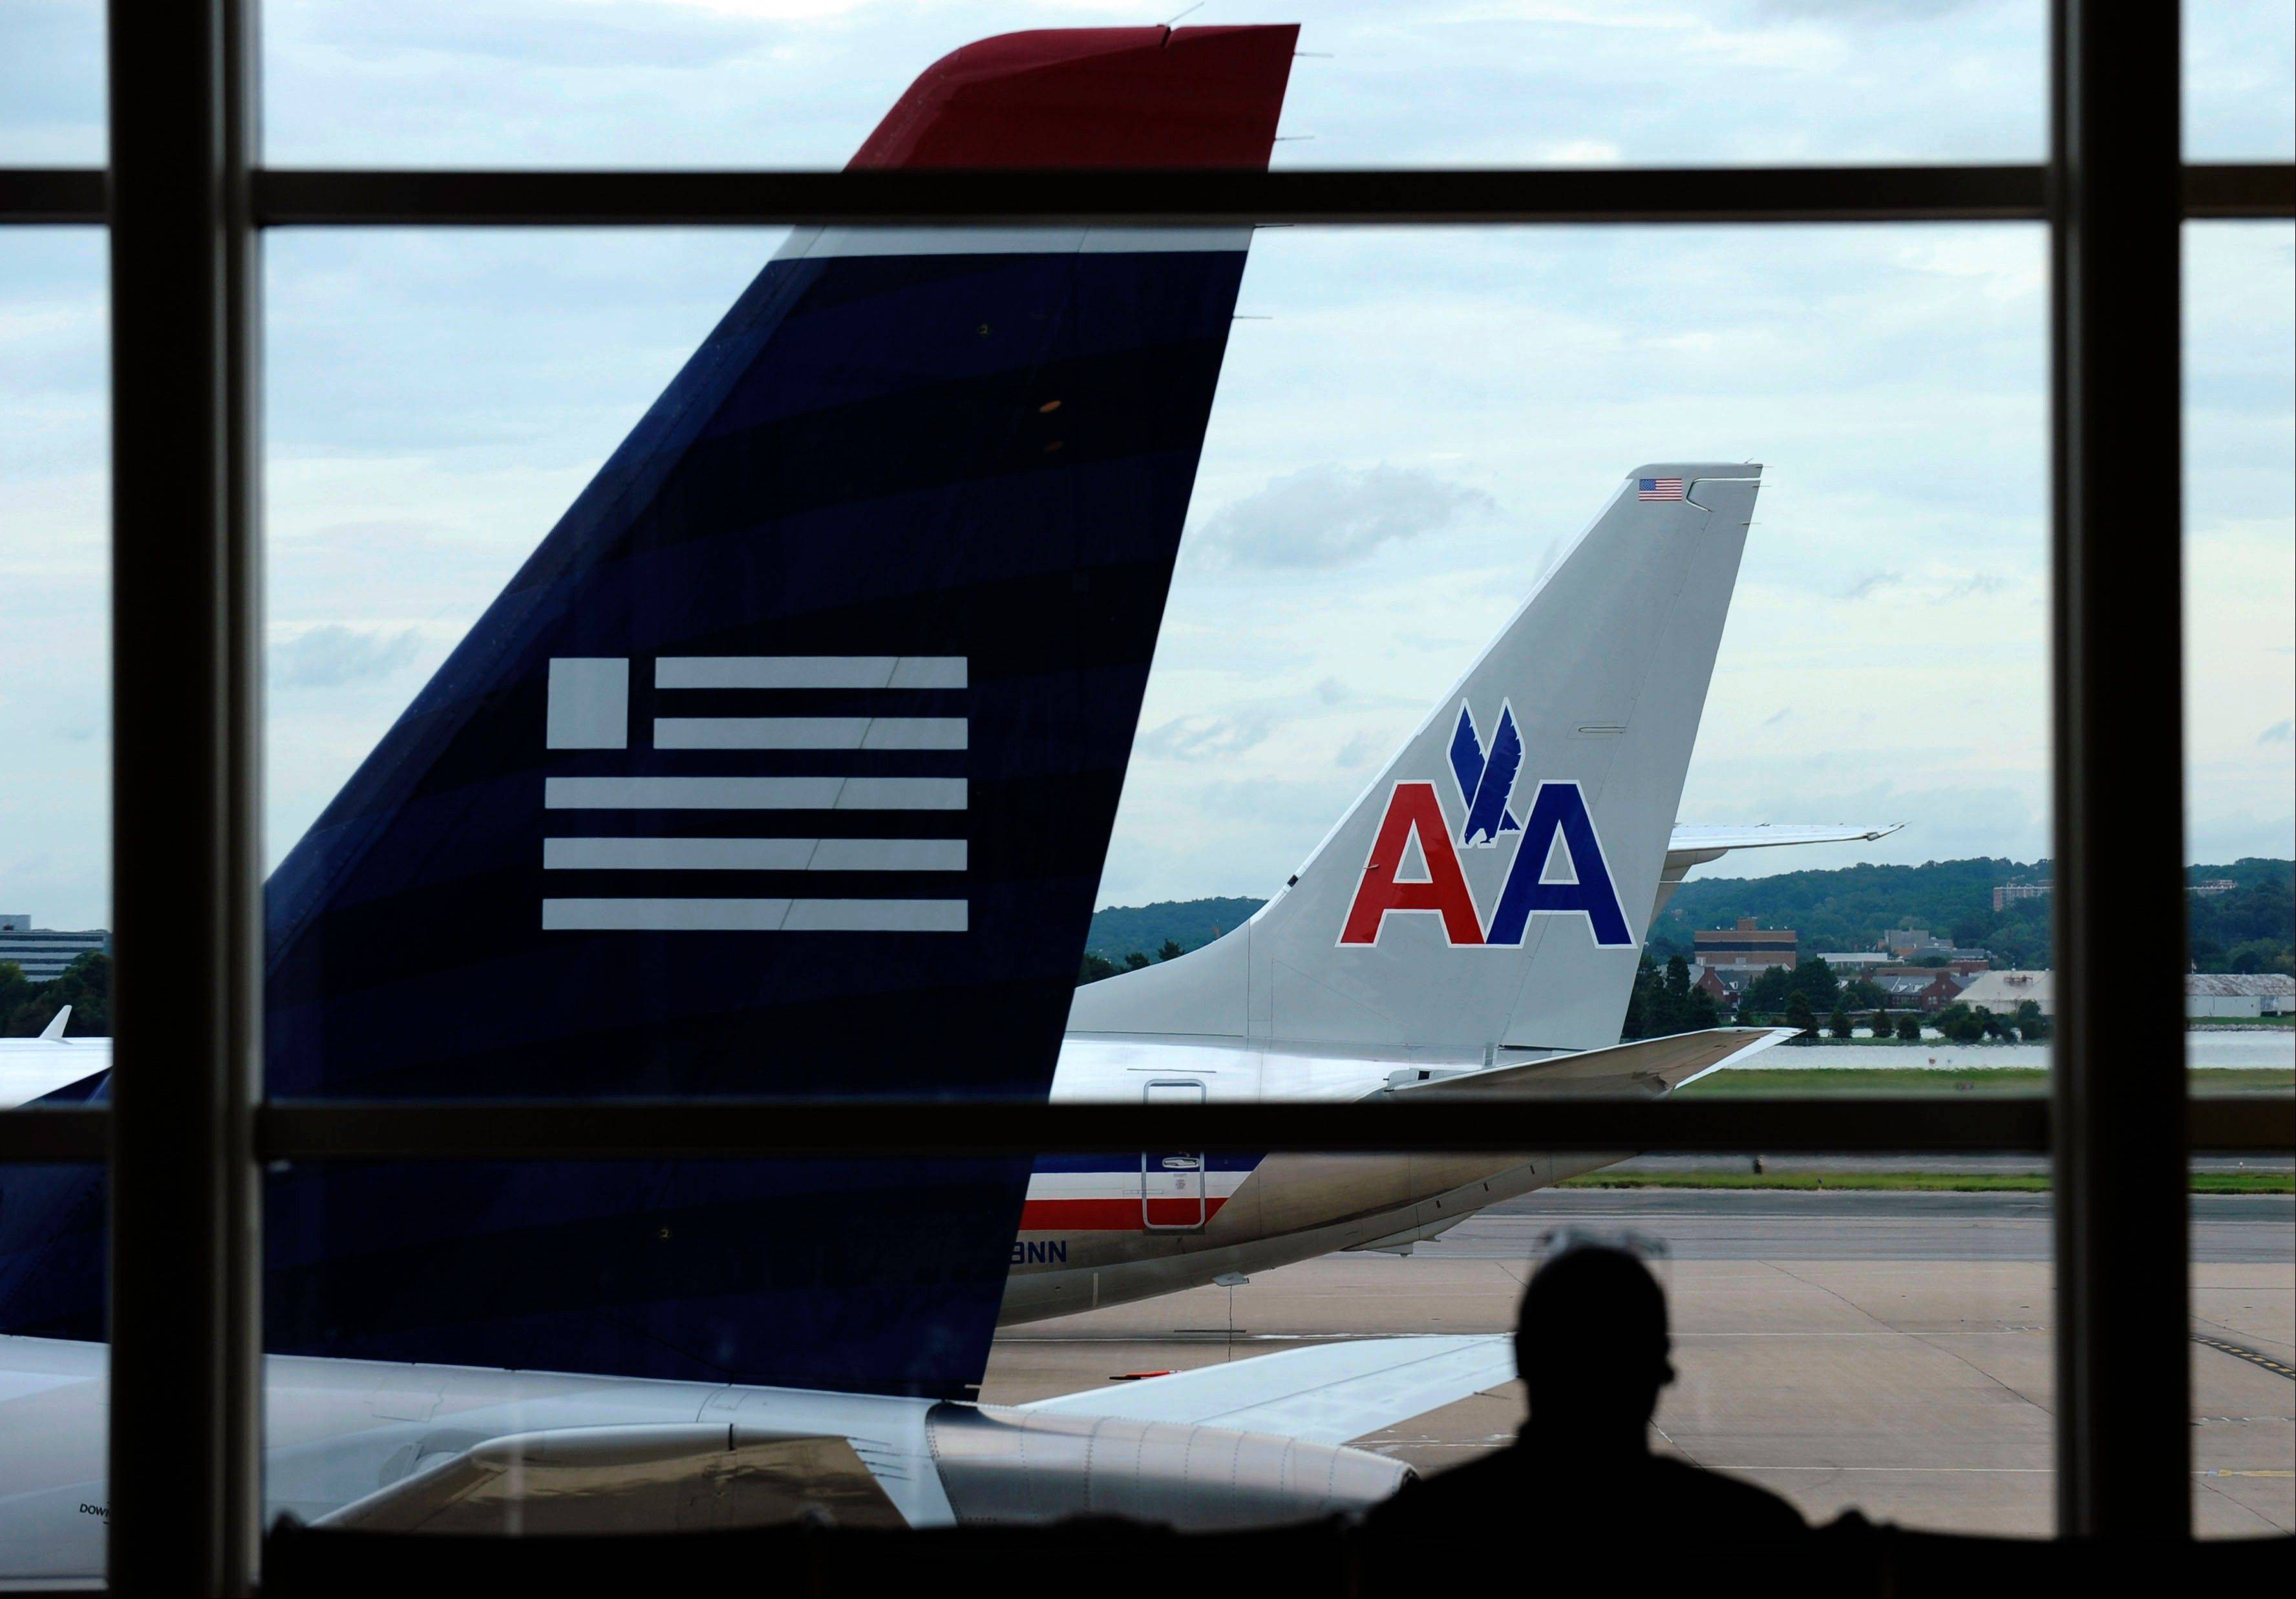 The government is putting its foot down on rising airfares and fees by blocking the merger of American and US Airways � but for fliers, it�s already too late.